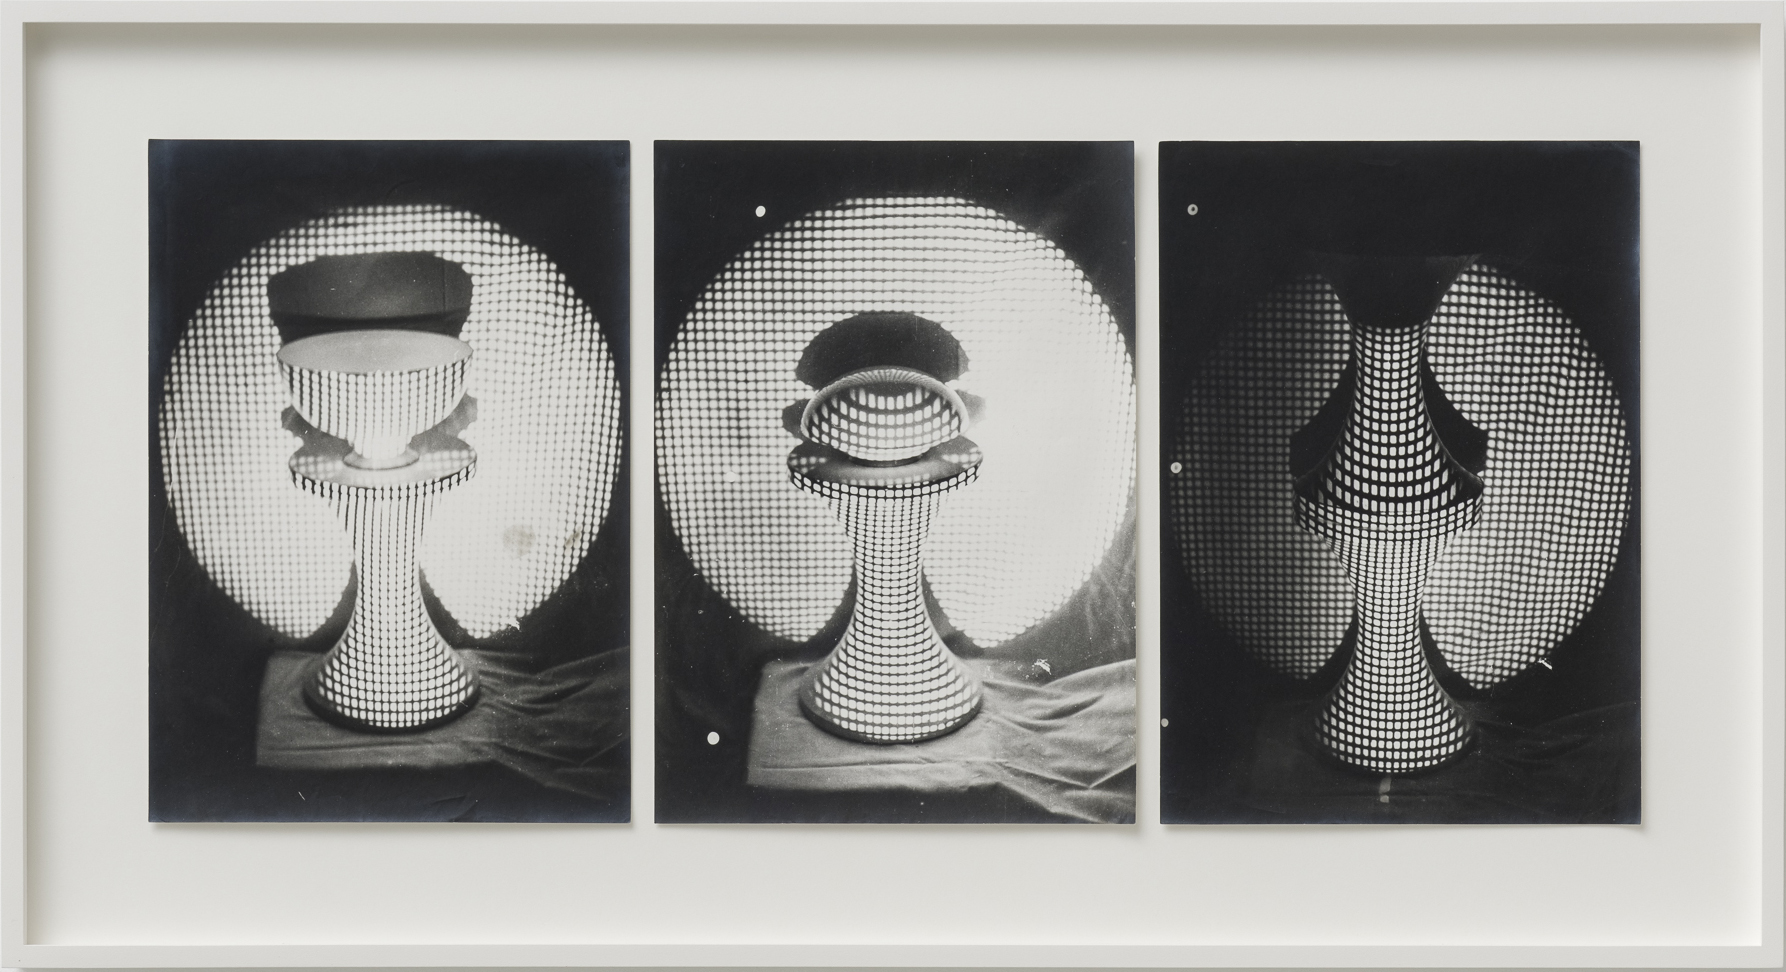 Ferenc Ficzek, Untitled (Chair, bowl, grid) No. 1-3, 1973, series of 3 silver gelatin prints on Dokubrom paper, 41,5 x 76,5 cm (framed). Photo: Marcus Schneider